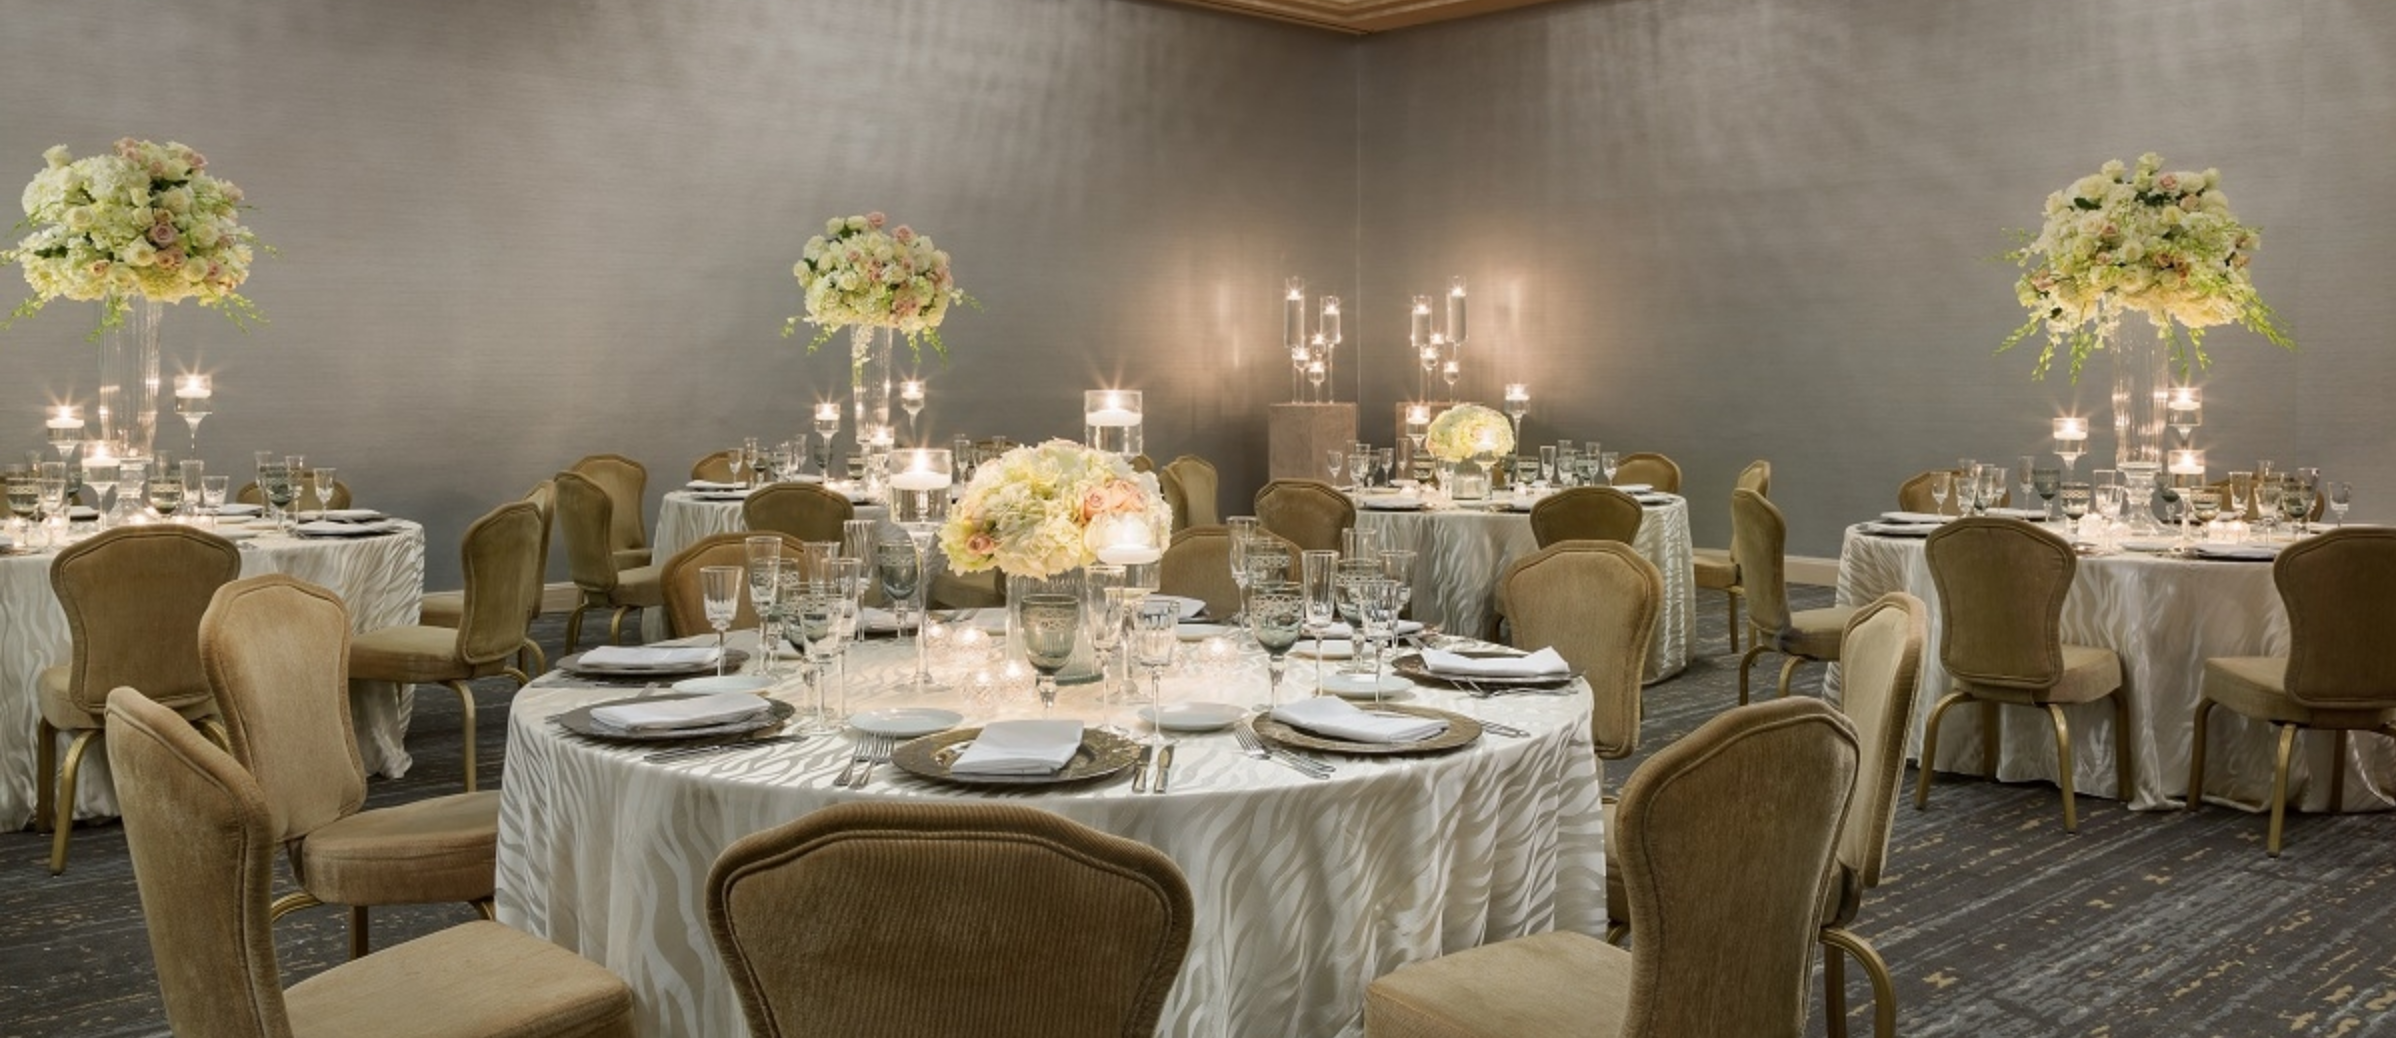 The Ballroom event space at Park Lane Hotel New York in New York City, NYC, NY/NJ Area